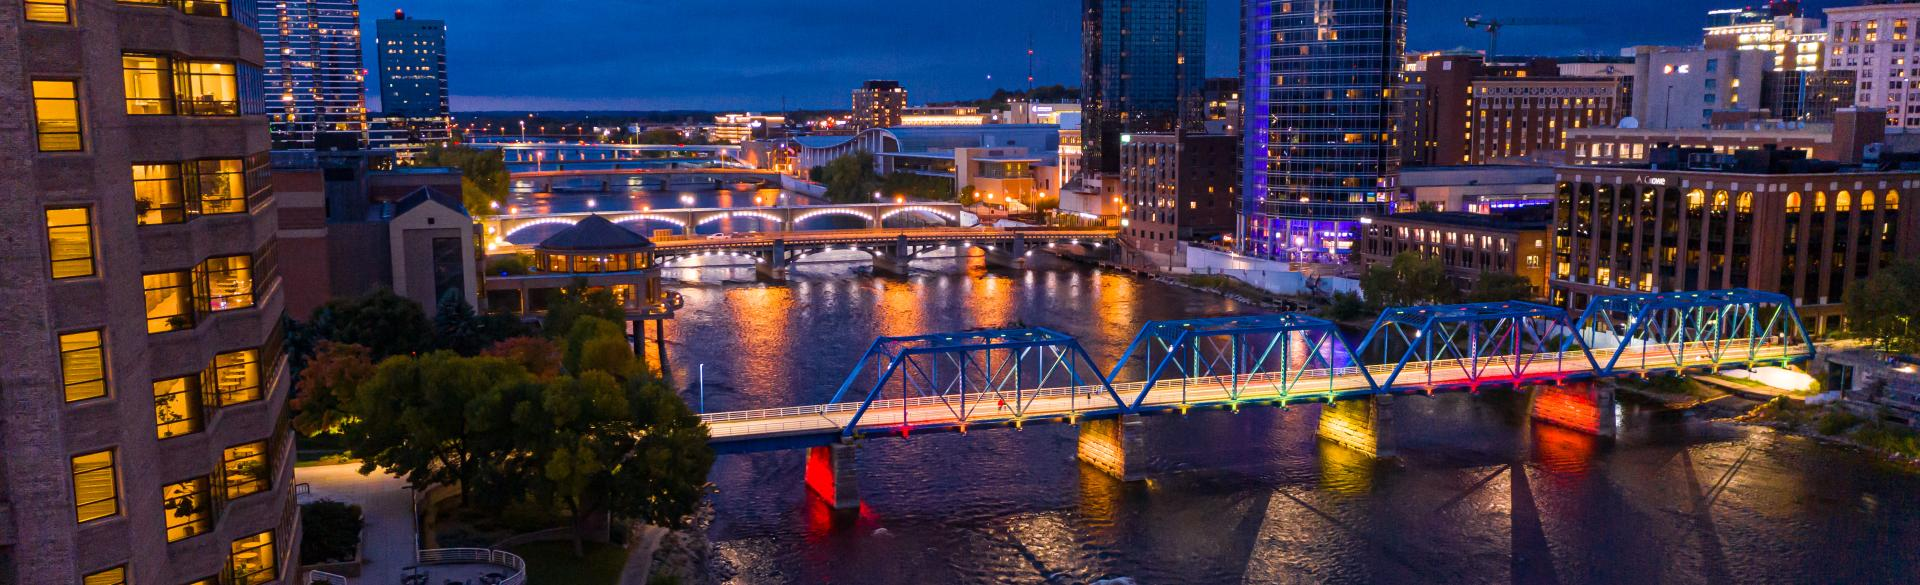 City Lights at Night in Downtown Grand Rapids